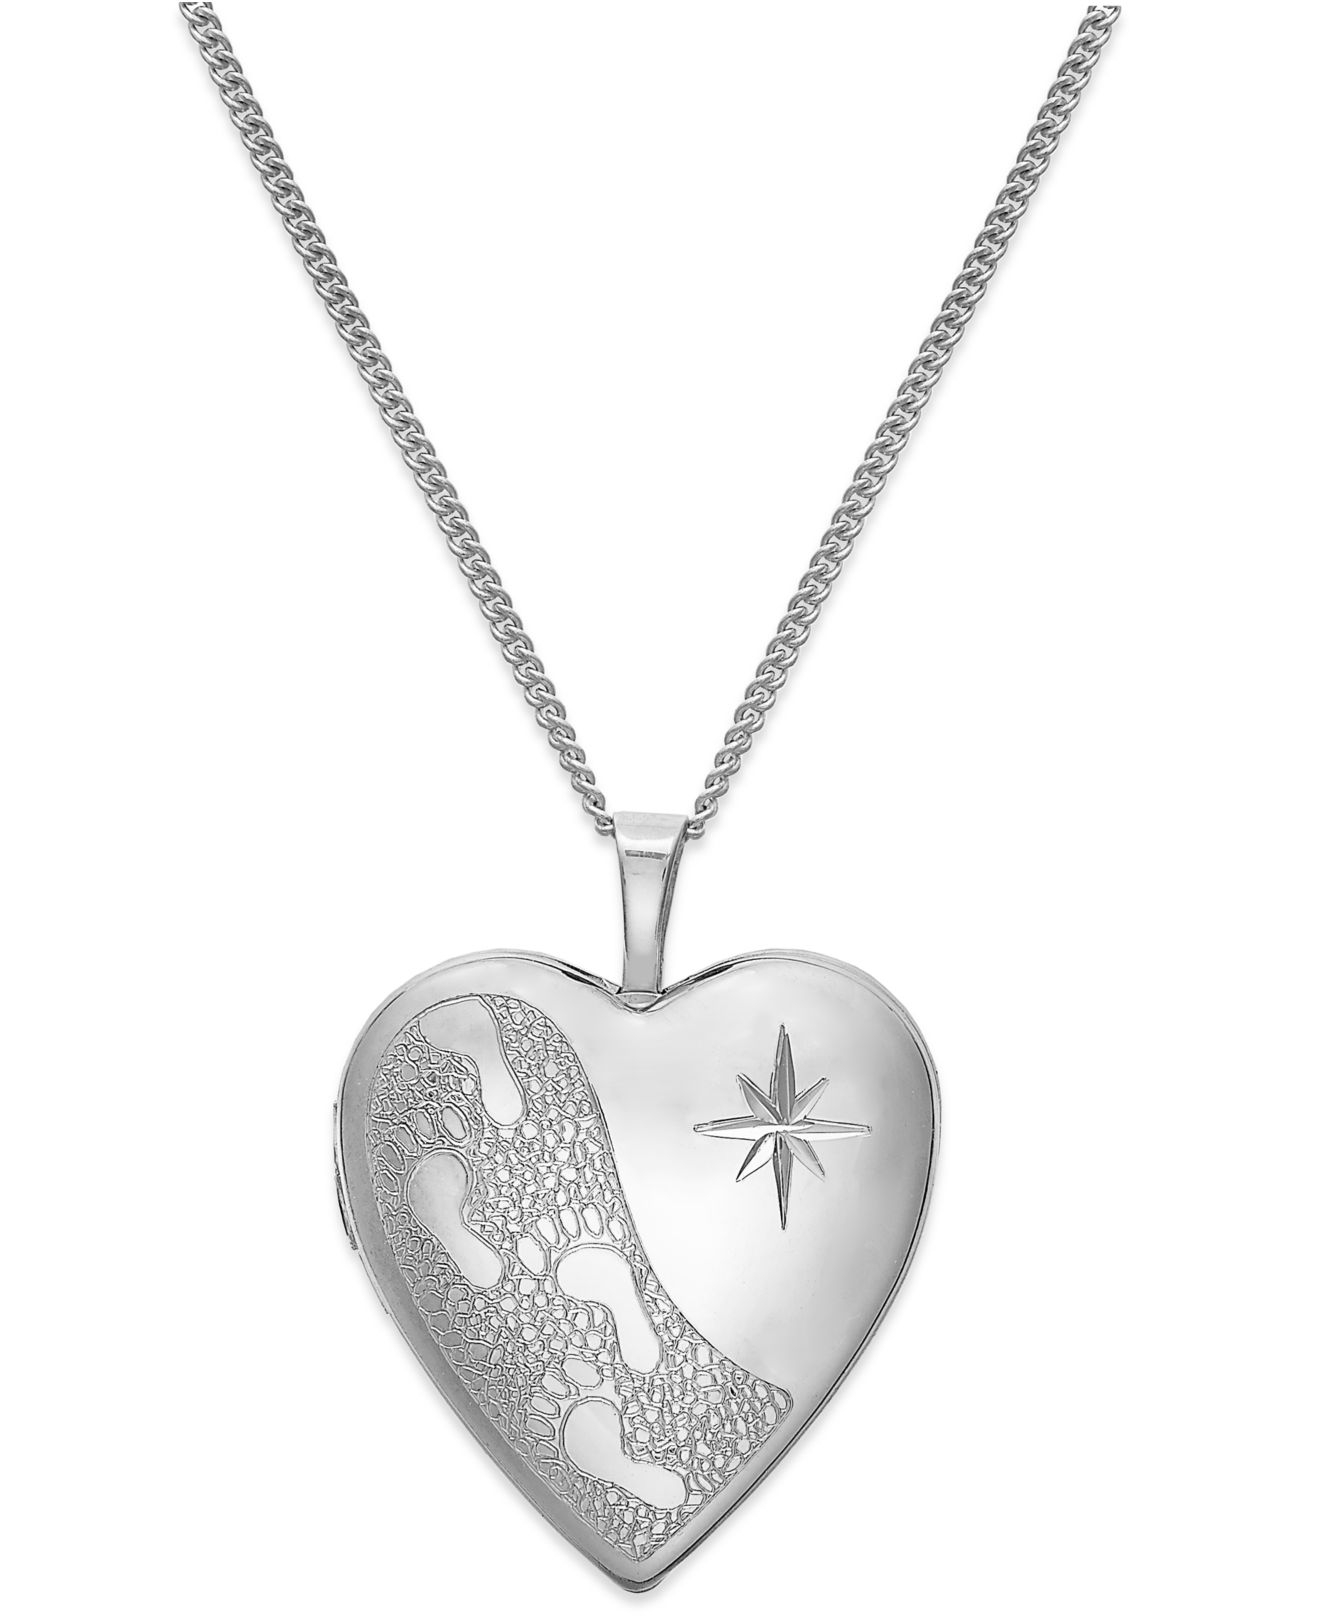 half girlfriend sterling girl heart com boy necklaces with friend part boyfriend pendant amazon breakable silver and lockets dp two chain